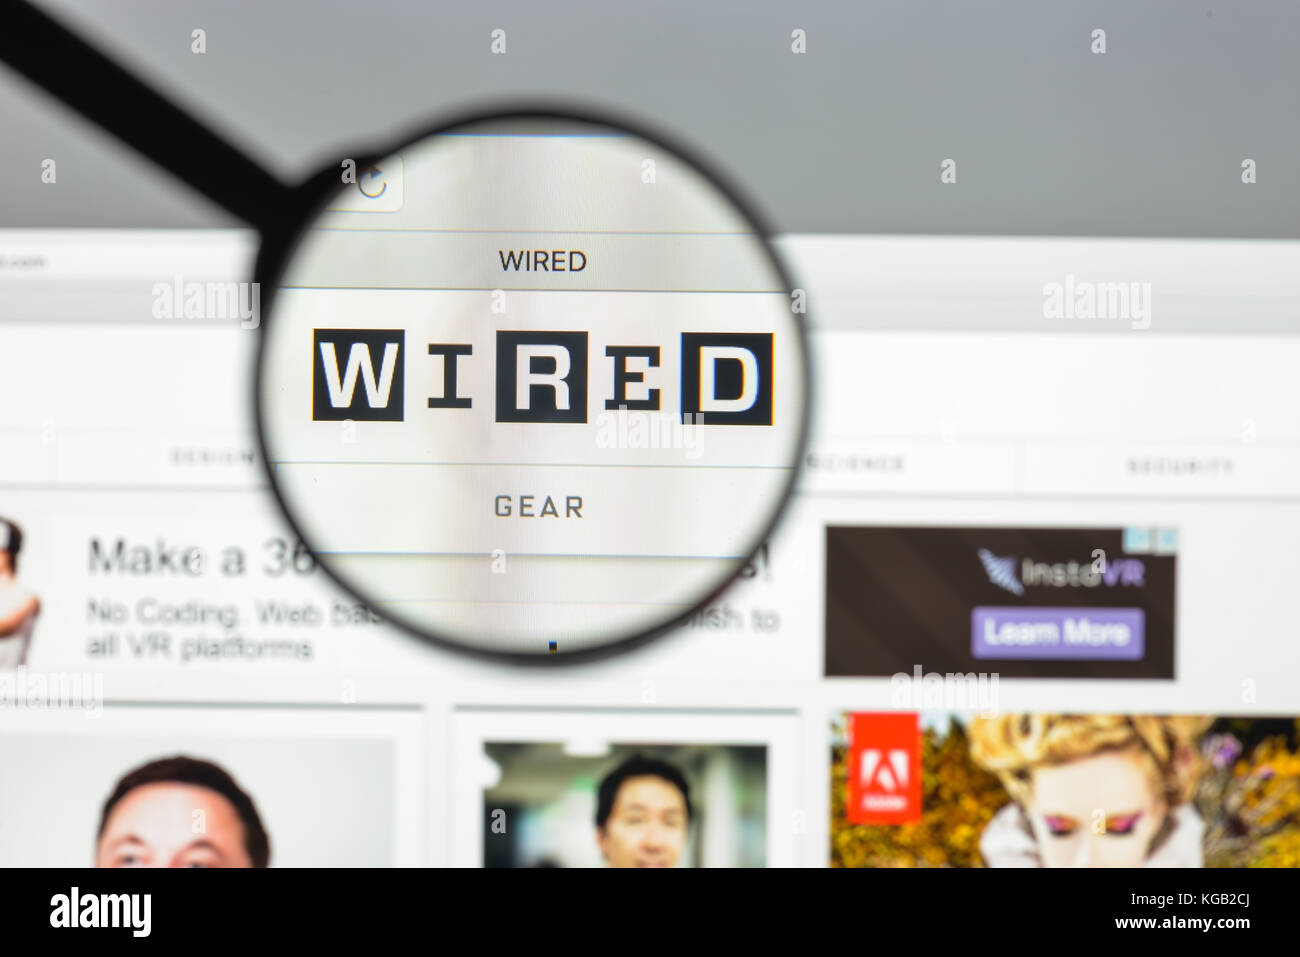 Milan, Italy - August 10, 2017: Wired website homepage. It is a ...